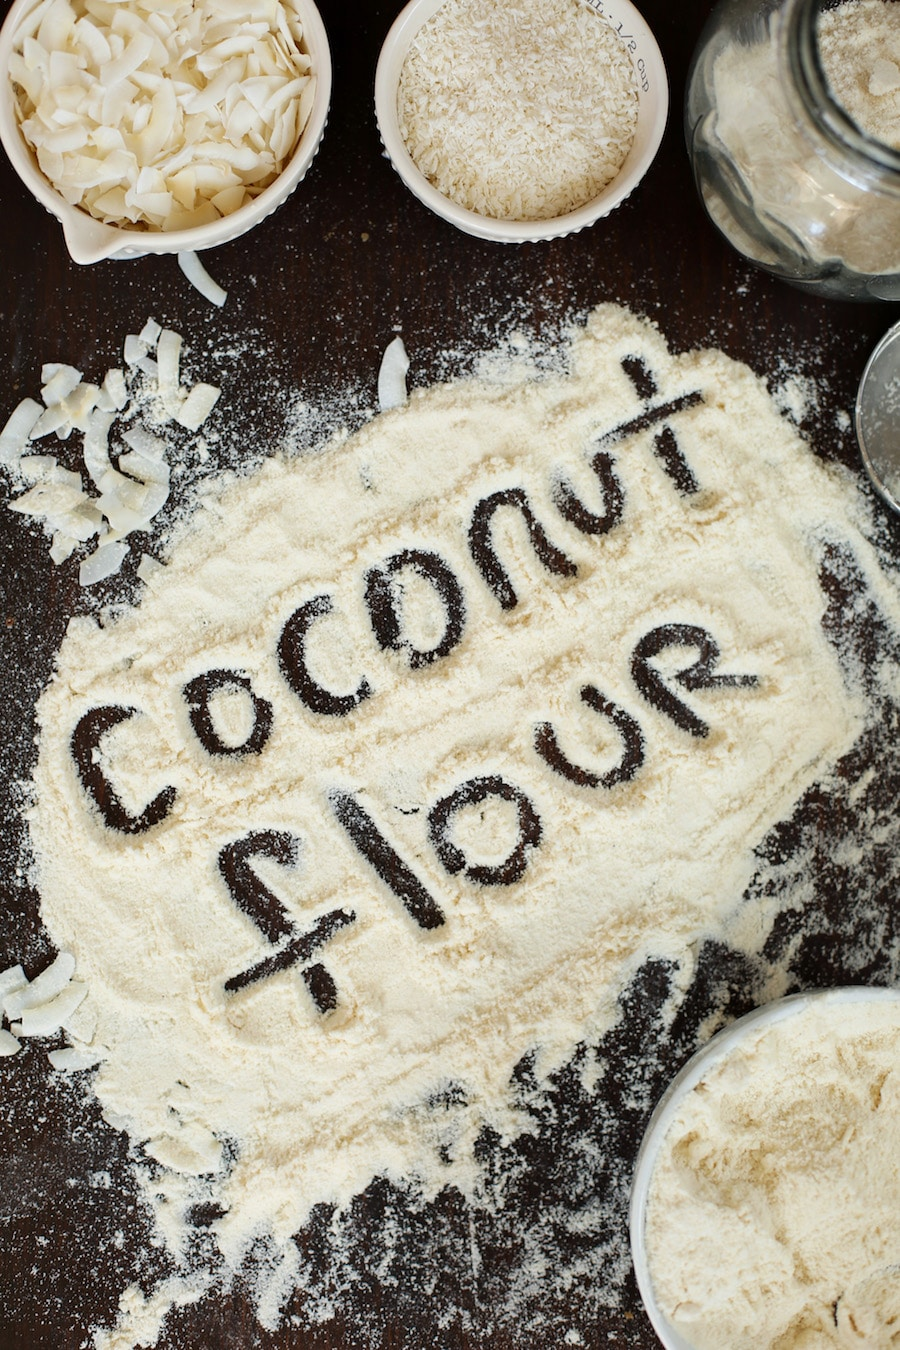 Tips & tricks on how to cook and bake with coconut flour